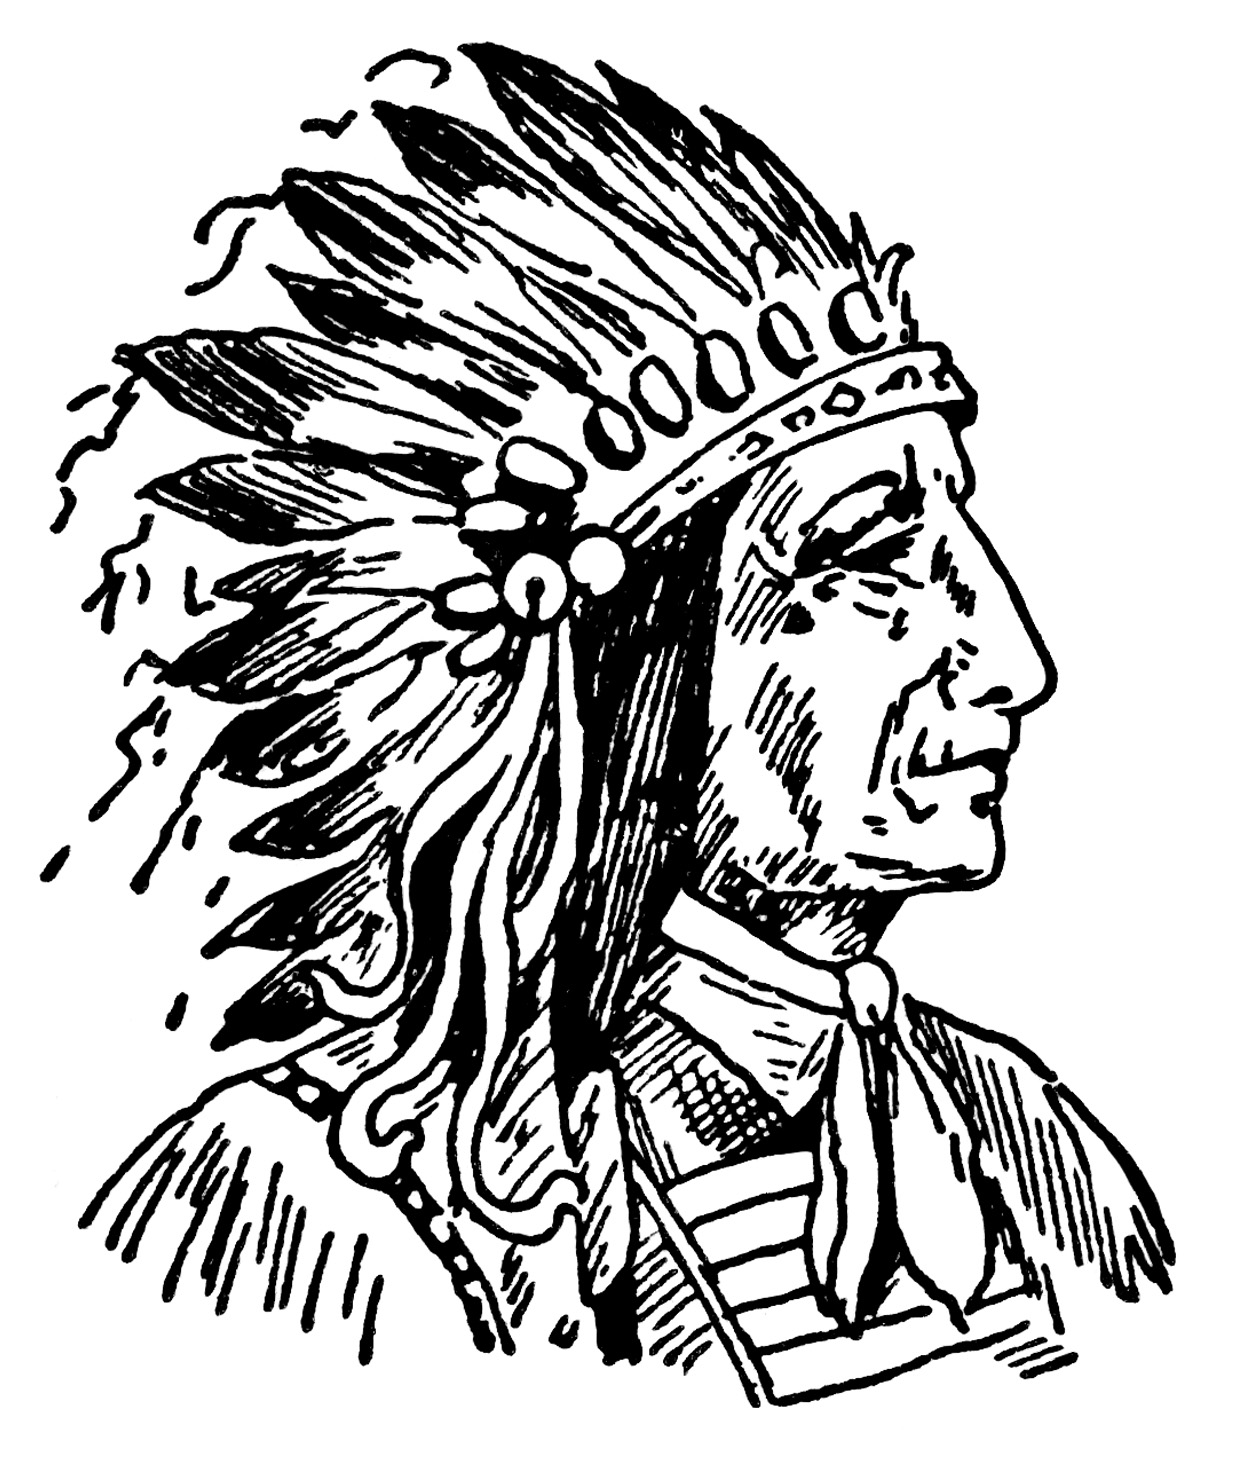 Headdress clipart black and white The with Clipartix clipart 5